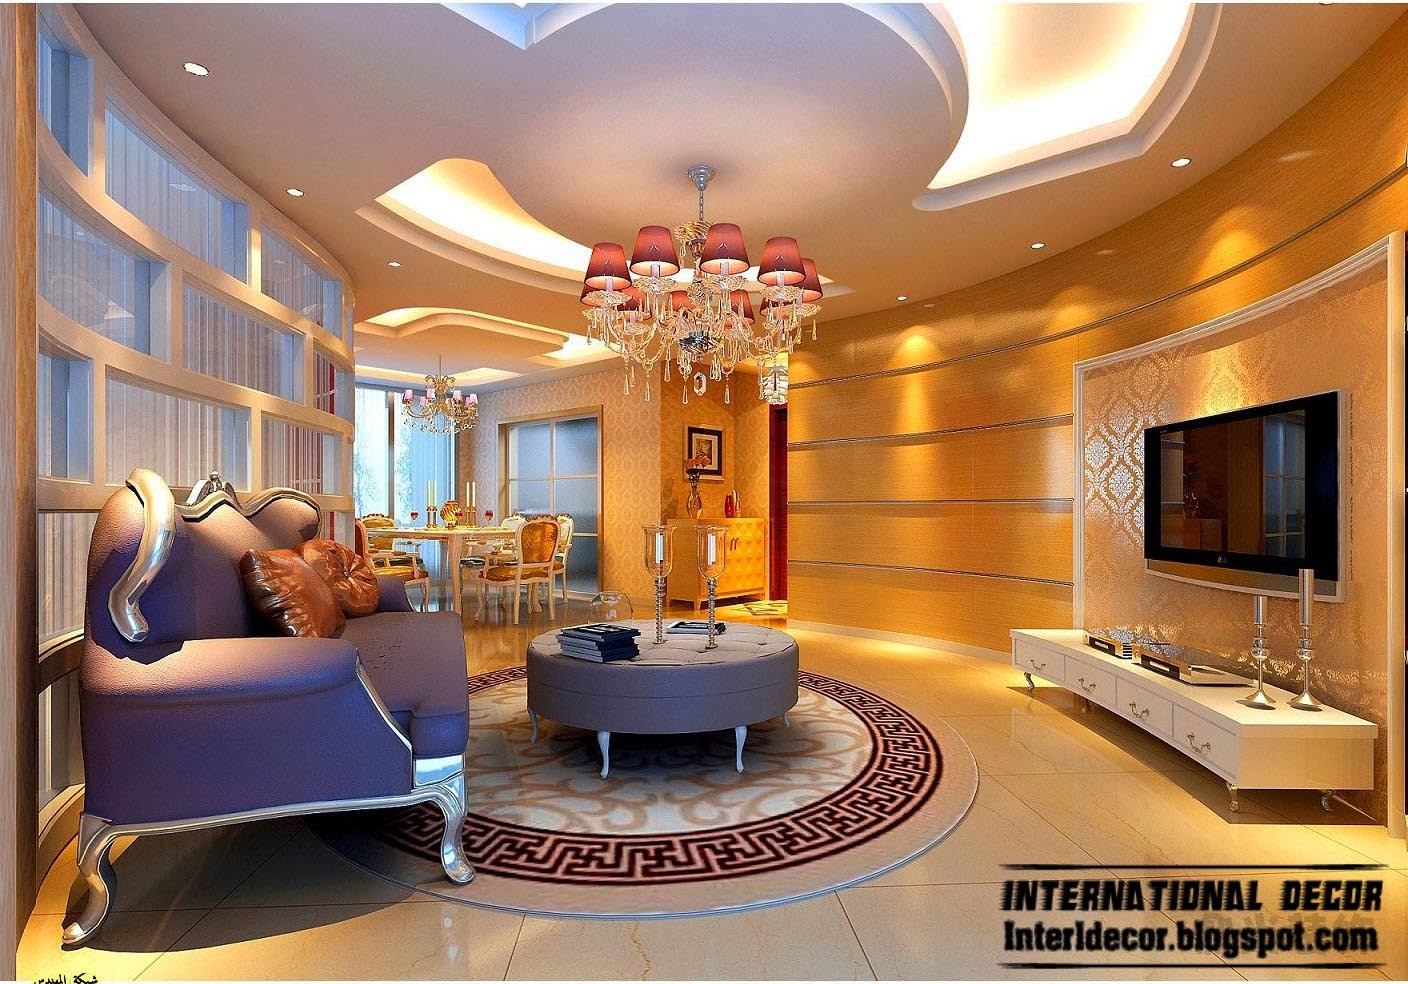 Suspended Ceiling Tiles, Lighting, Systems Pop Designs For Living Room 2014